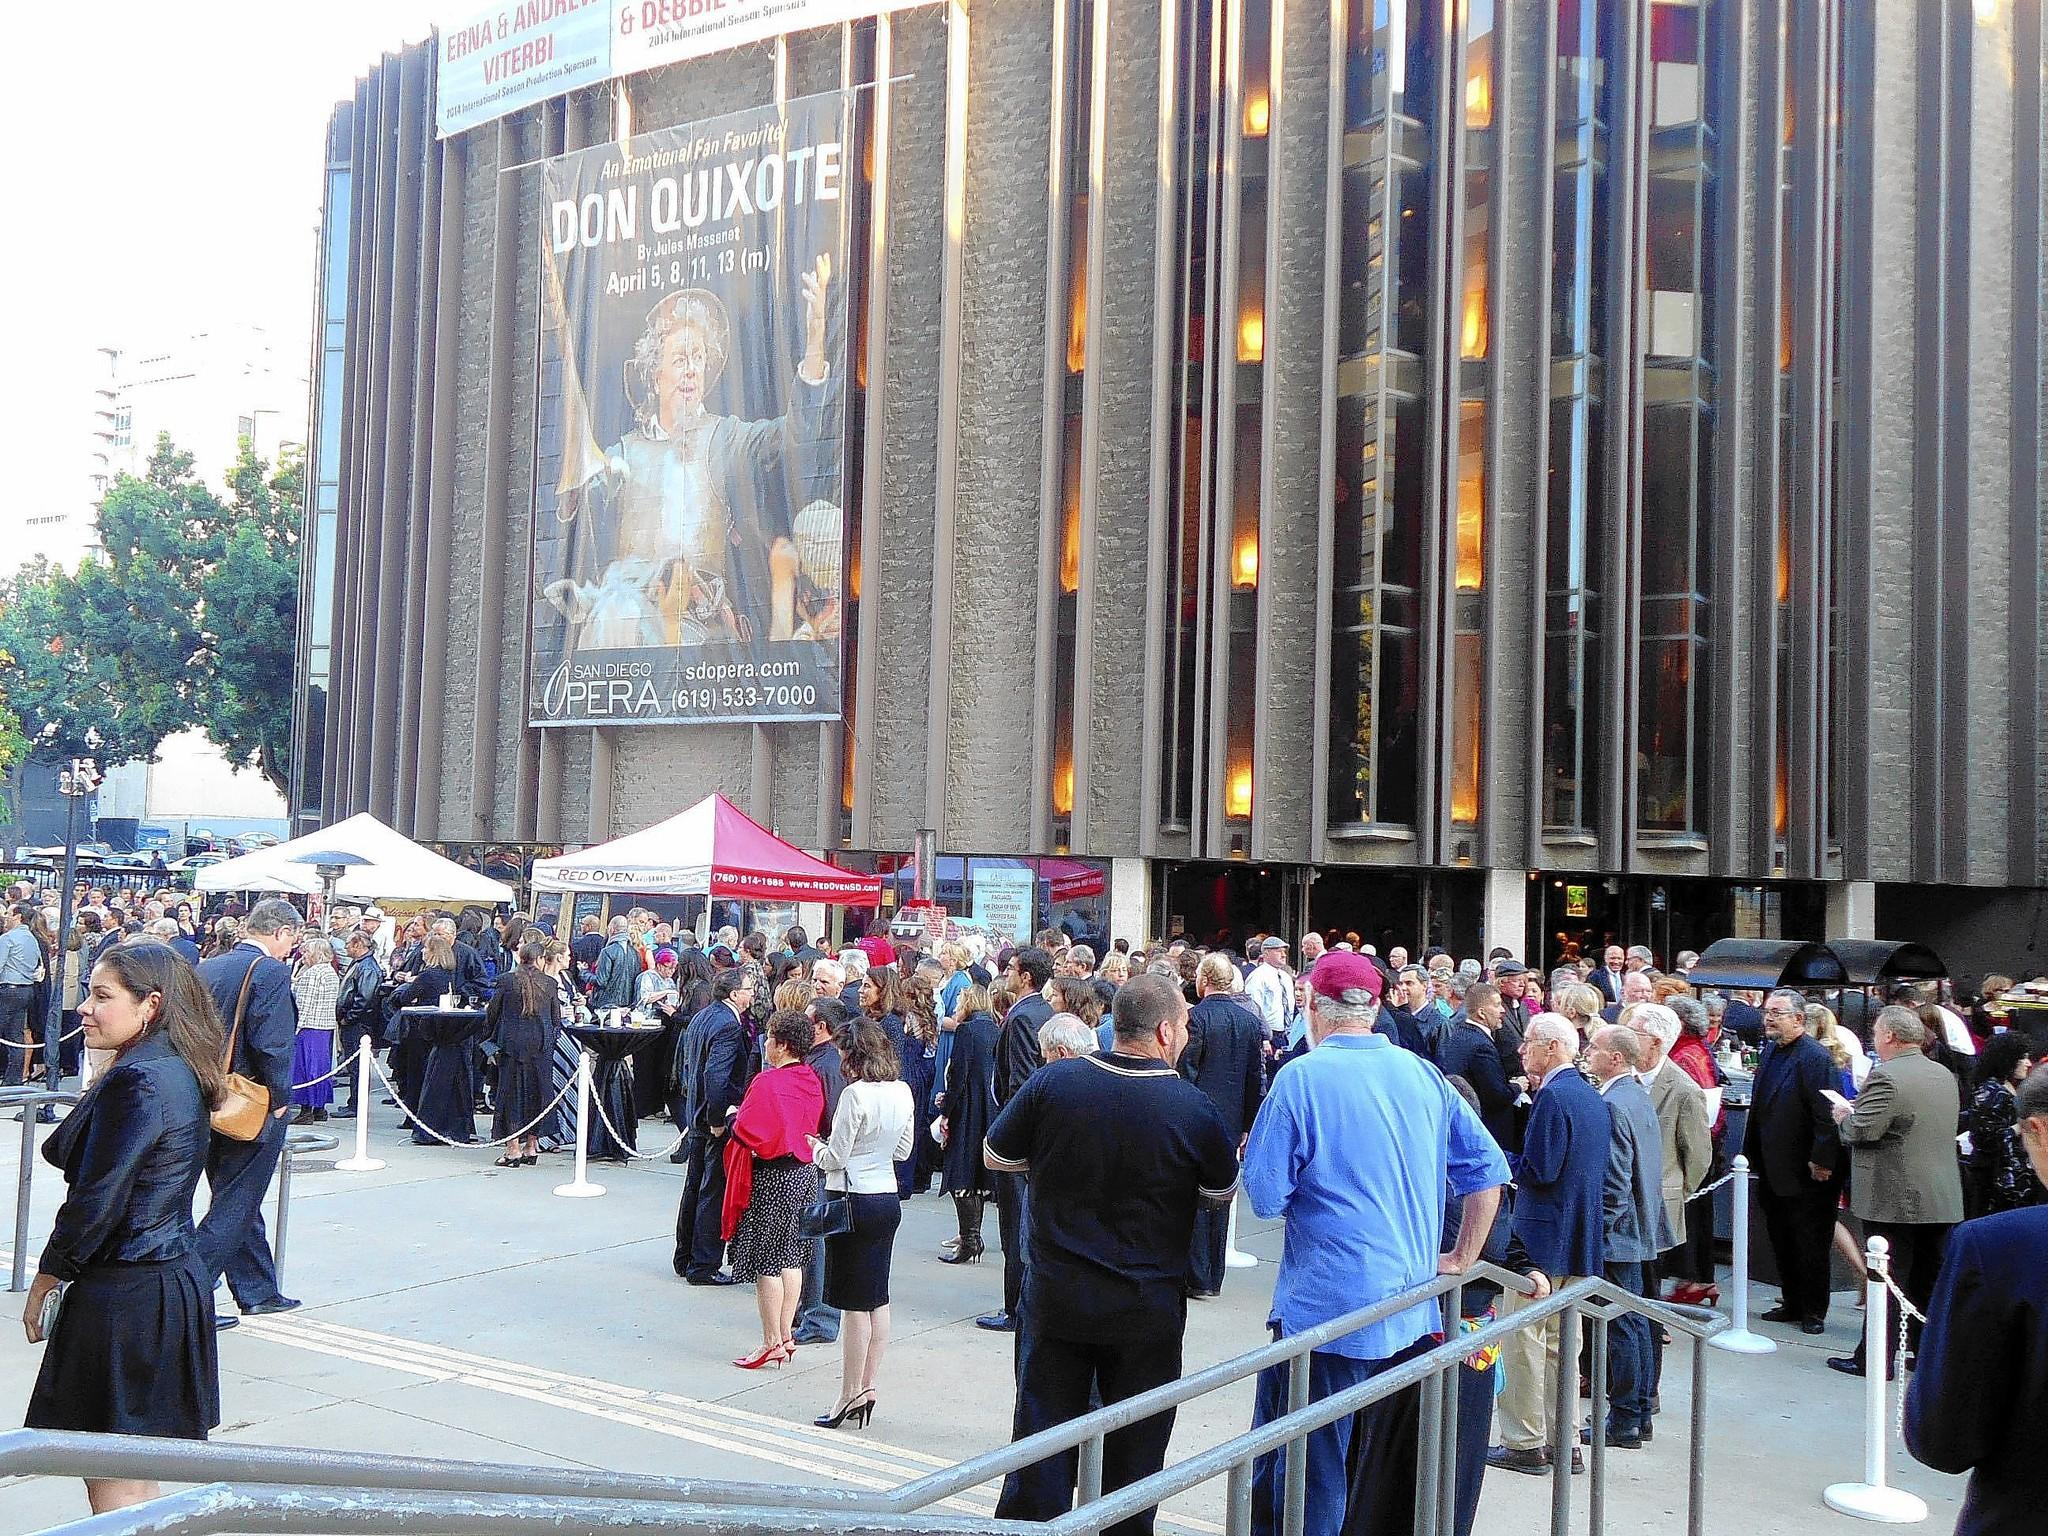 "San Diego Opera patrons gather at the Civic Theatre in downtown San Diego before the April 5 evening performance of ""Don Quixote."""